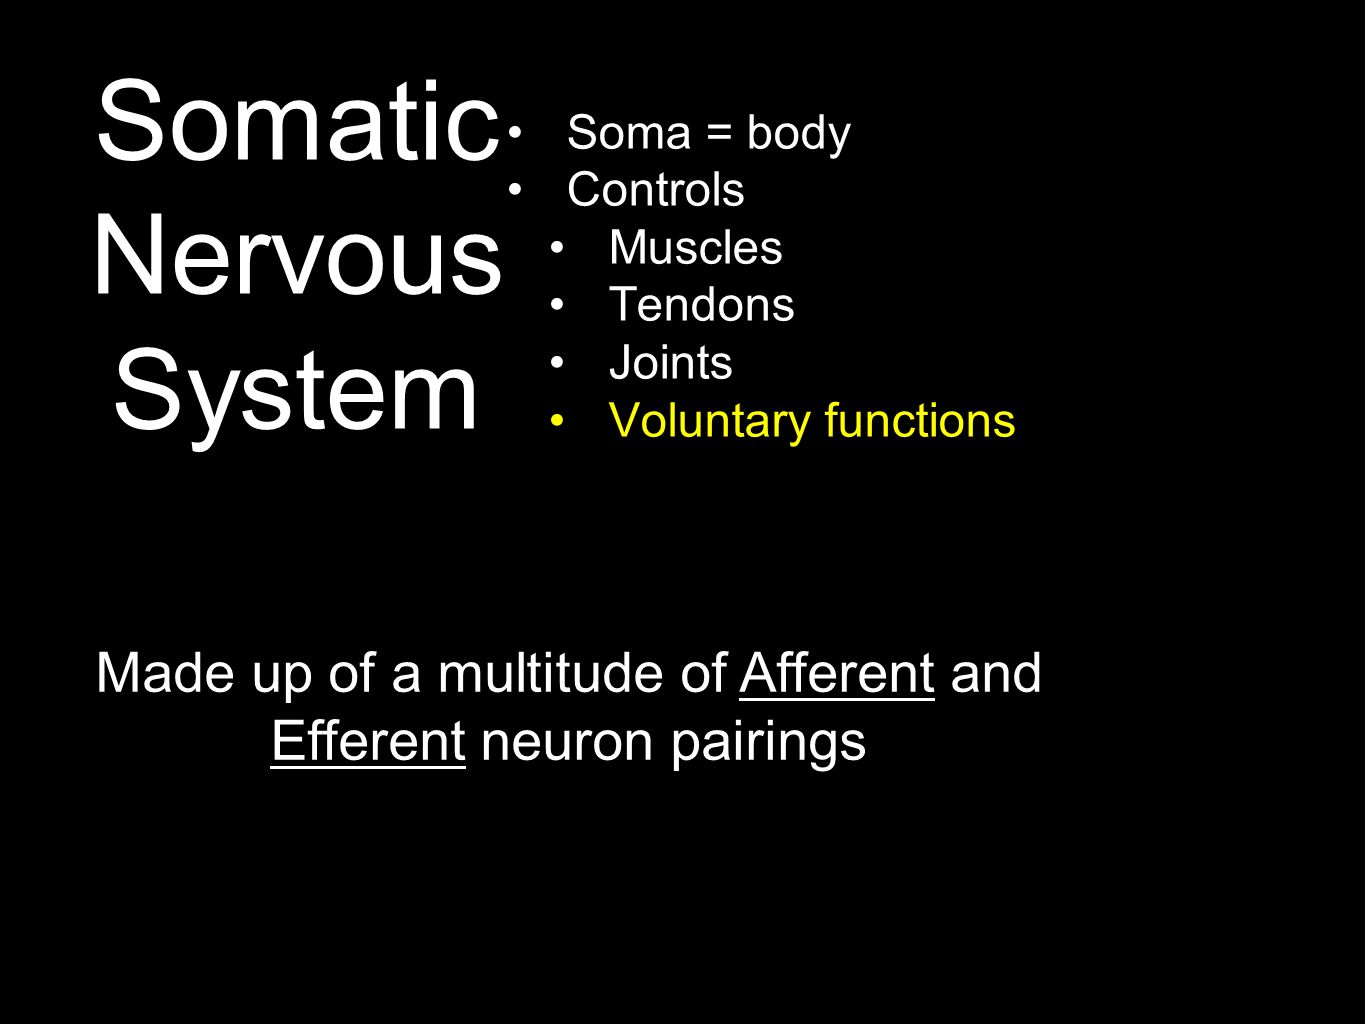 Somatic Nervous System Soma = body Controls Muscles Tendons Joints Voluntary functions Made up of a multitude of Afferent and Efferent neuron pairings